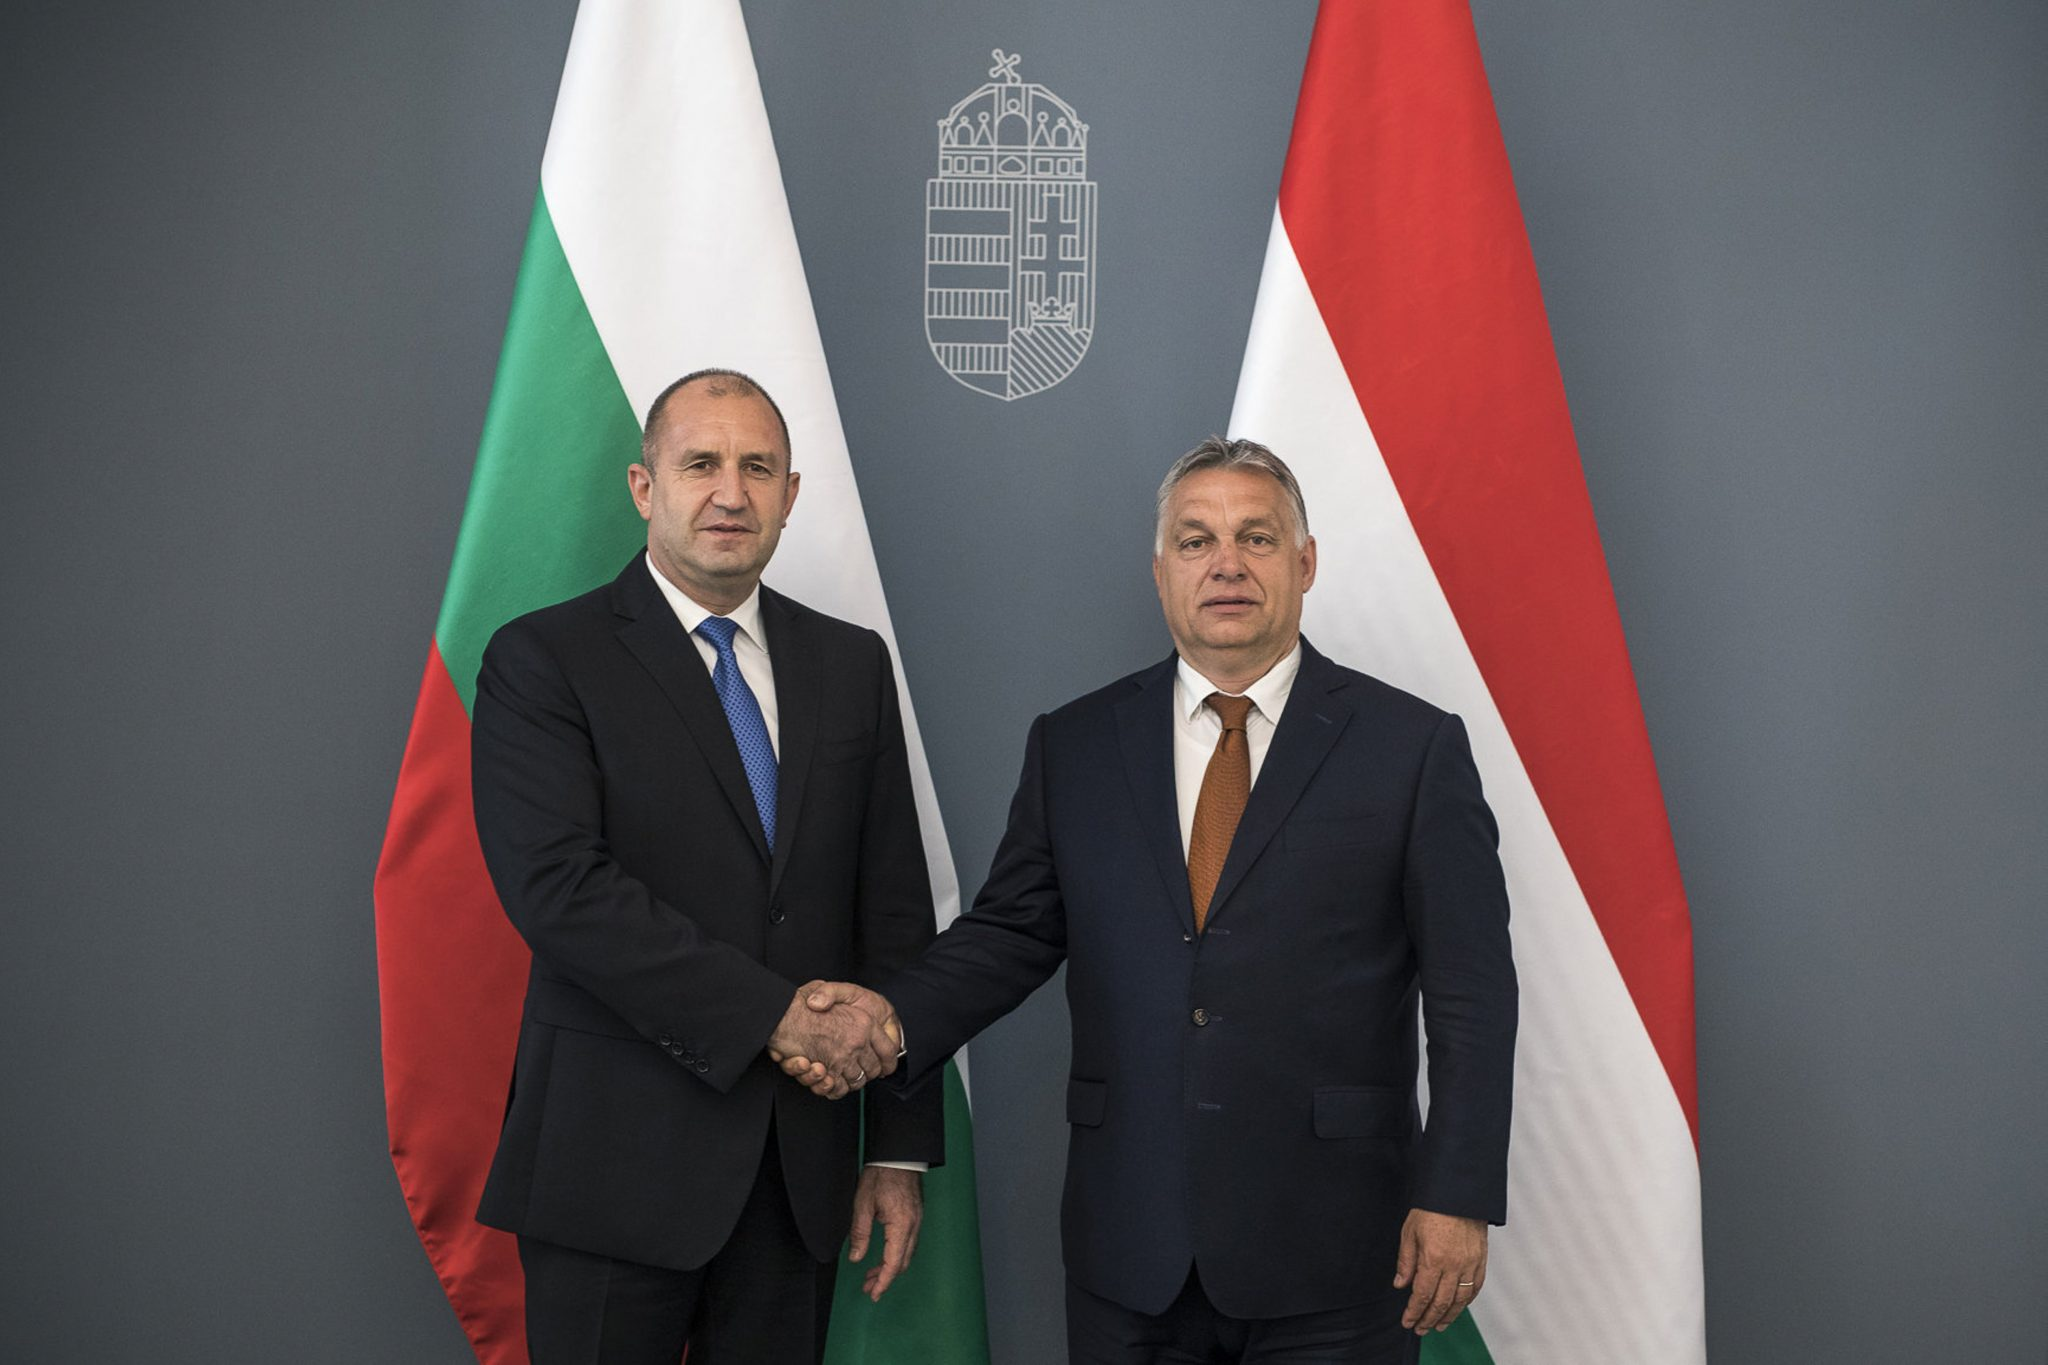 Orbán: 'Govt Views Bulgaria as an Ally on the Issue of Migration' post's picture